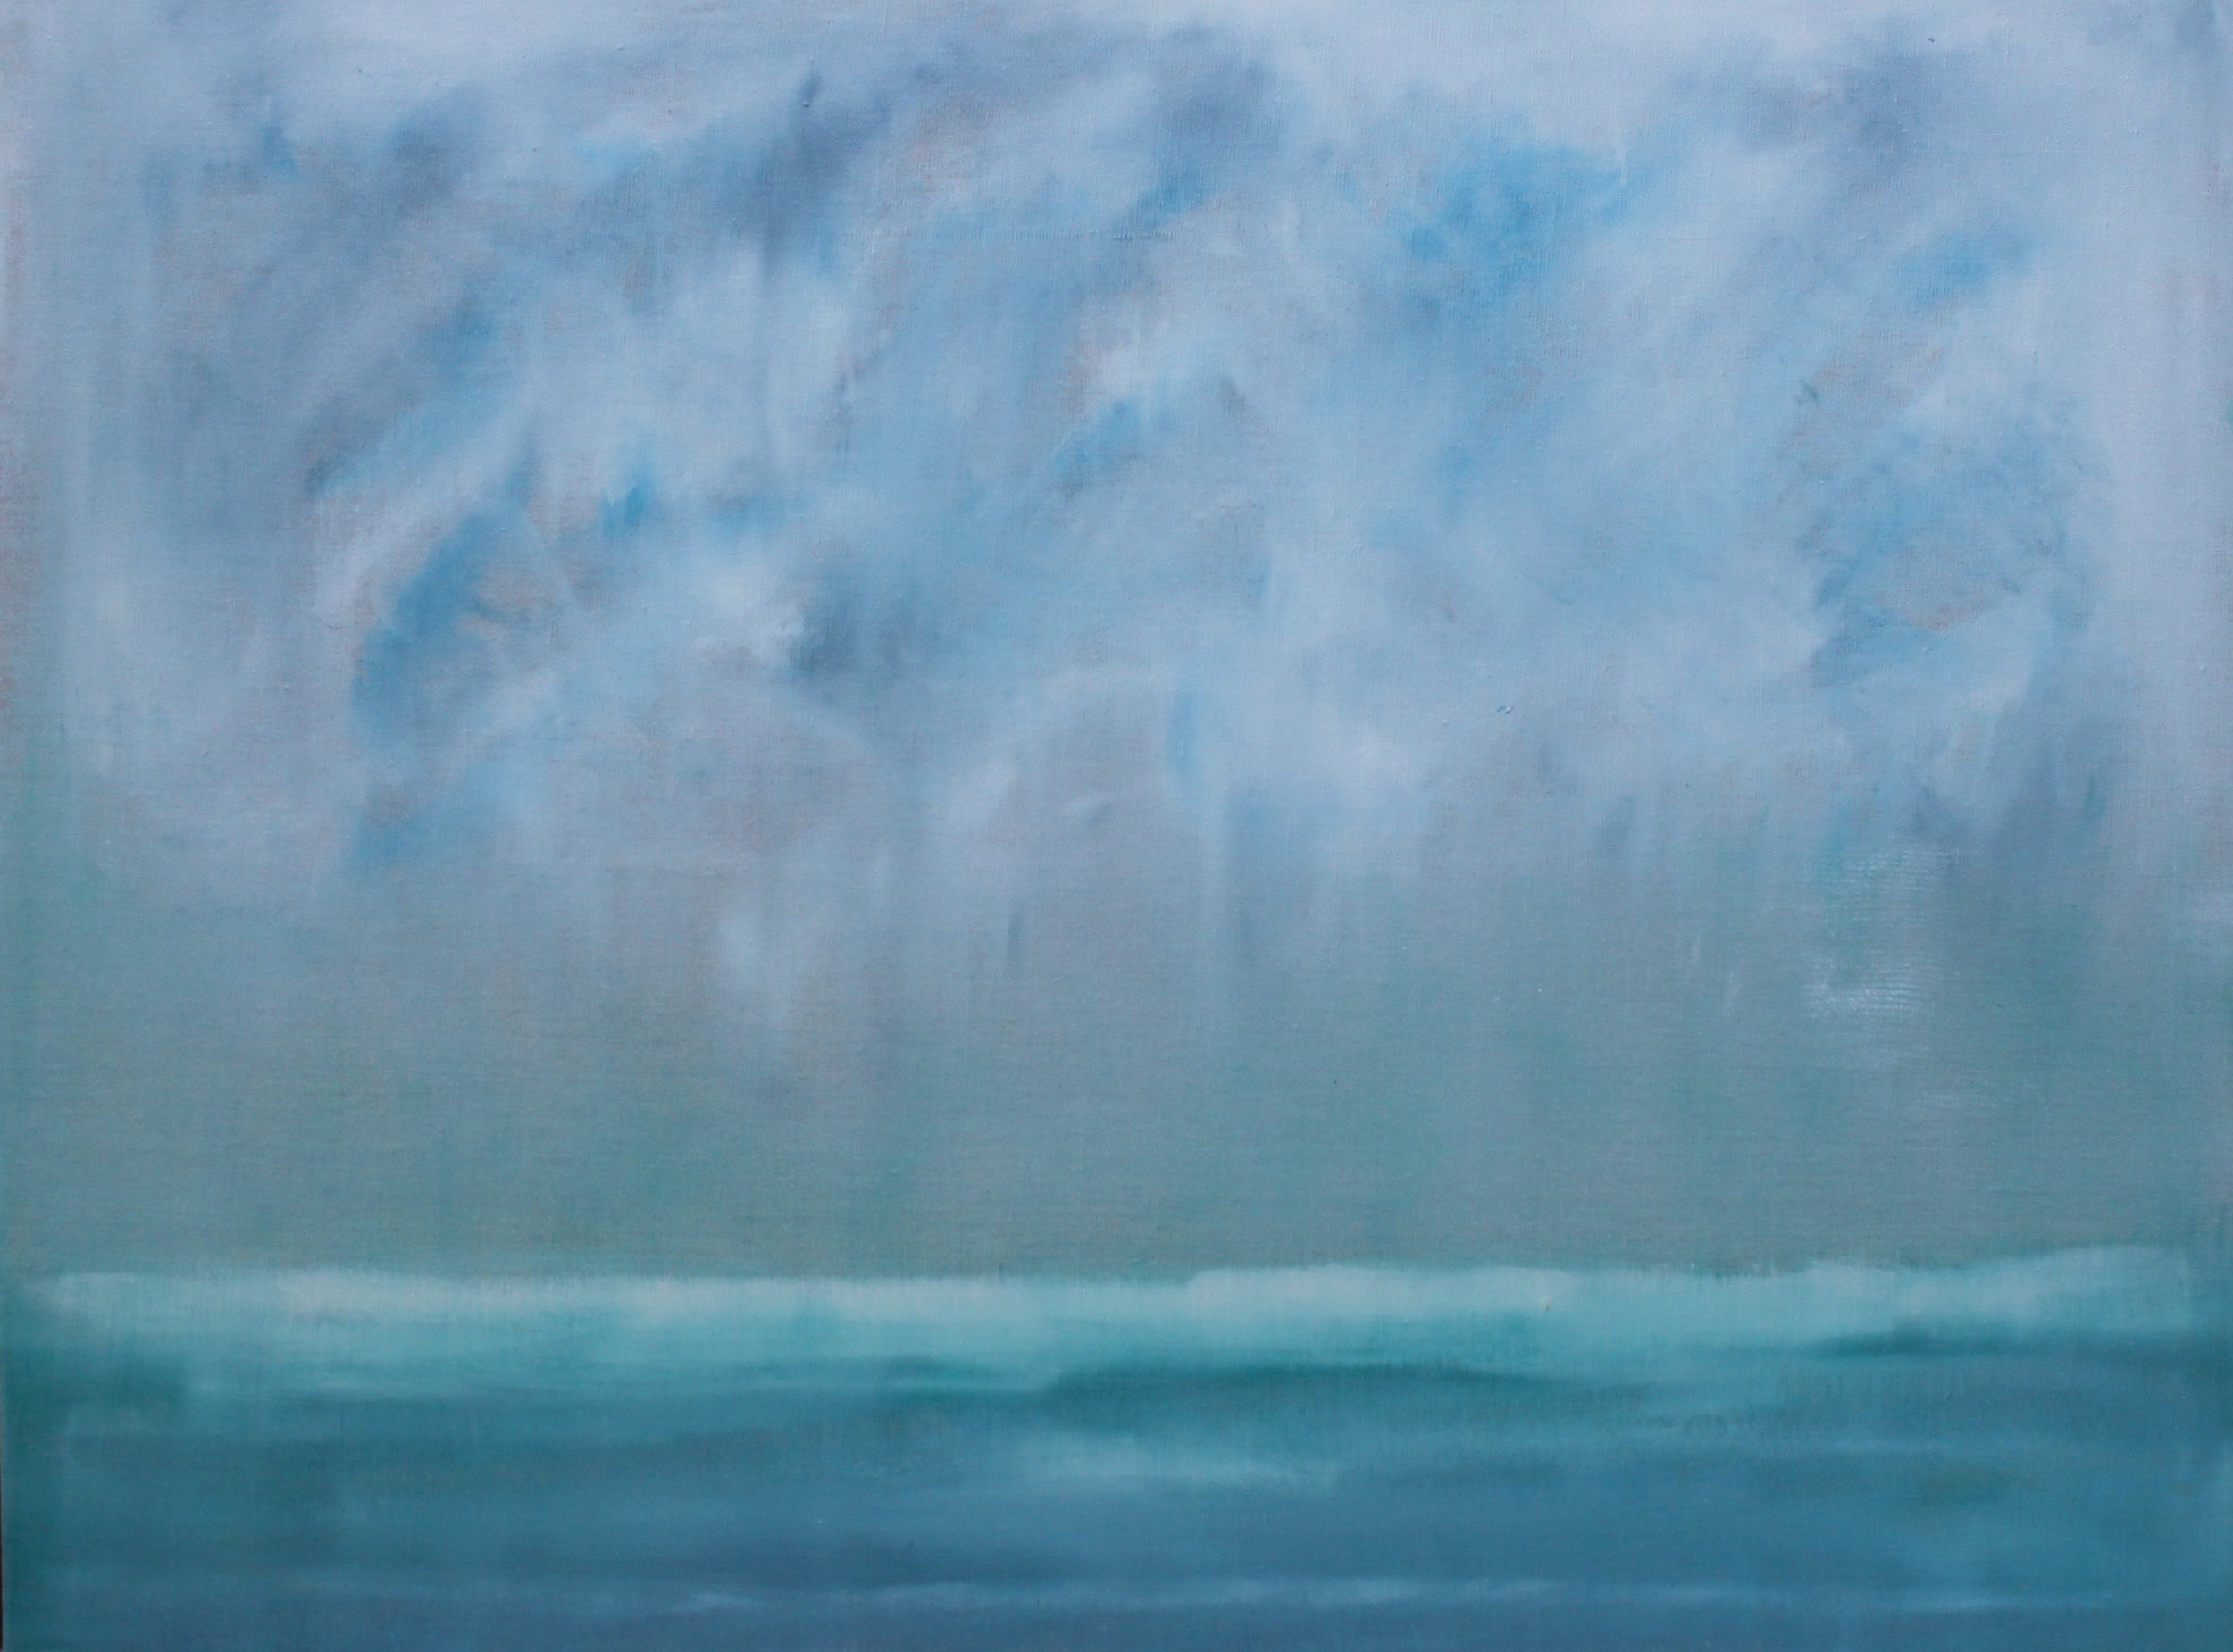 Aquamarine II by Michele D'Ermo, 2017, oil on linen, 30 x 40 in, $5200